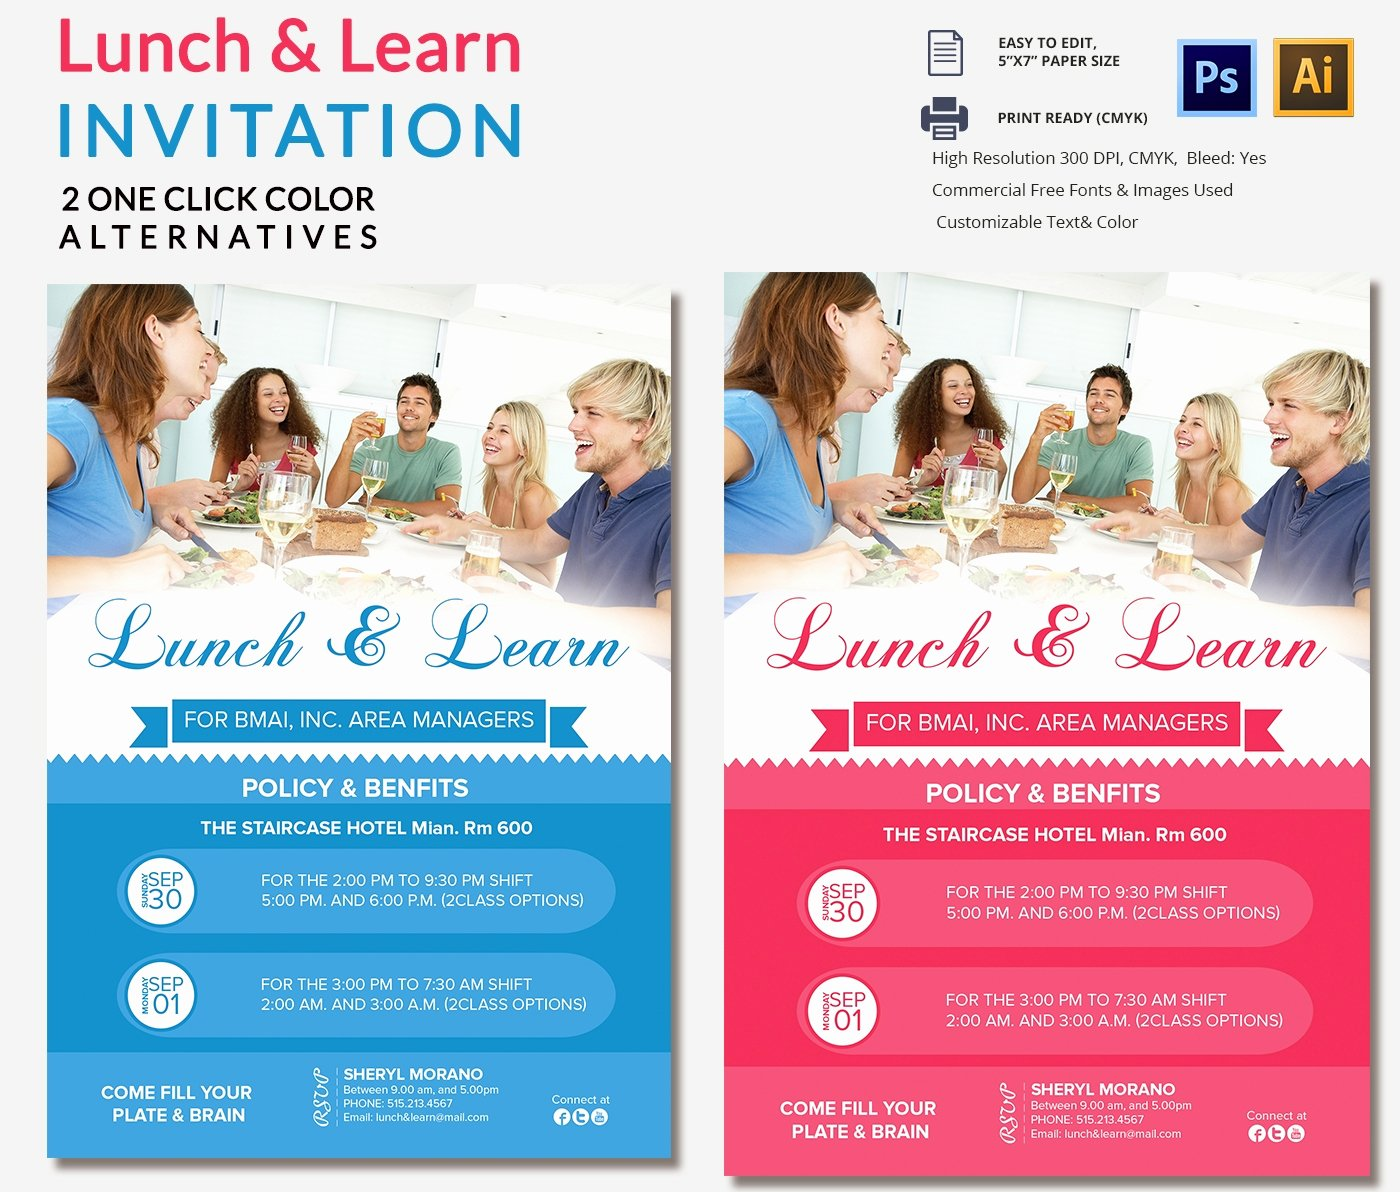 Lunch Invitation Template Free New Lunch Invitation Template 25 Free Psd Pdf Documents